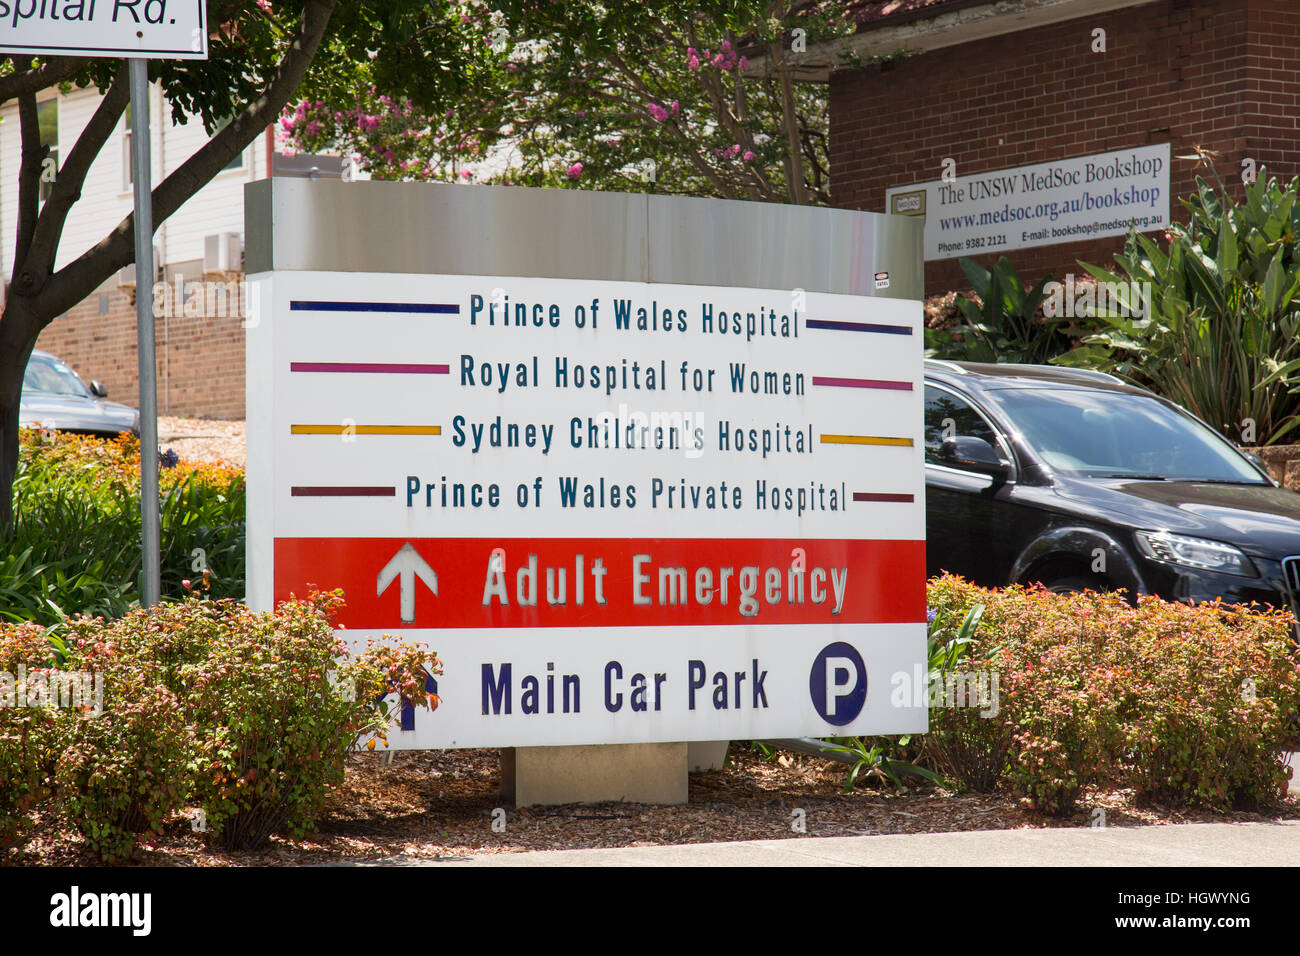 Entrance to Prince of Wales, childrens hospital,royal hospital for